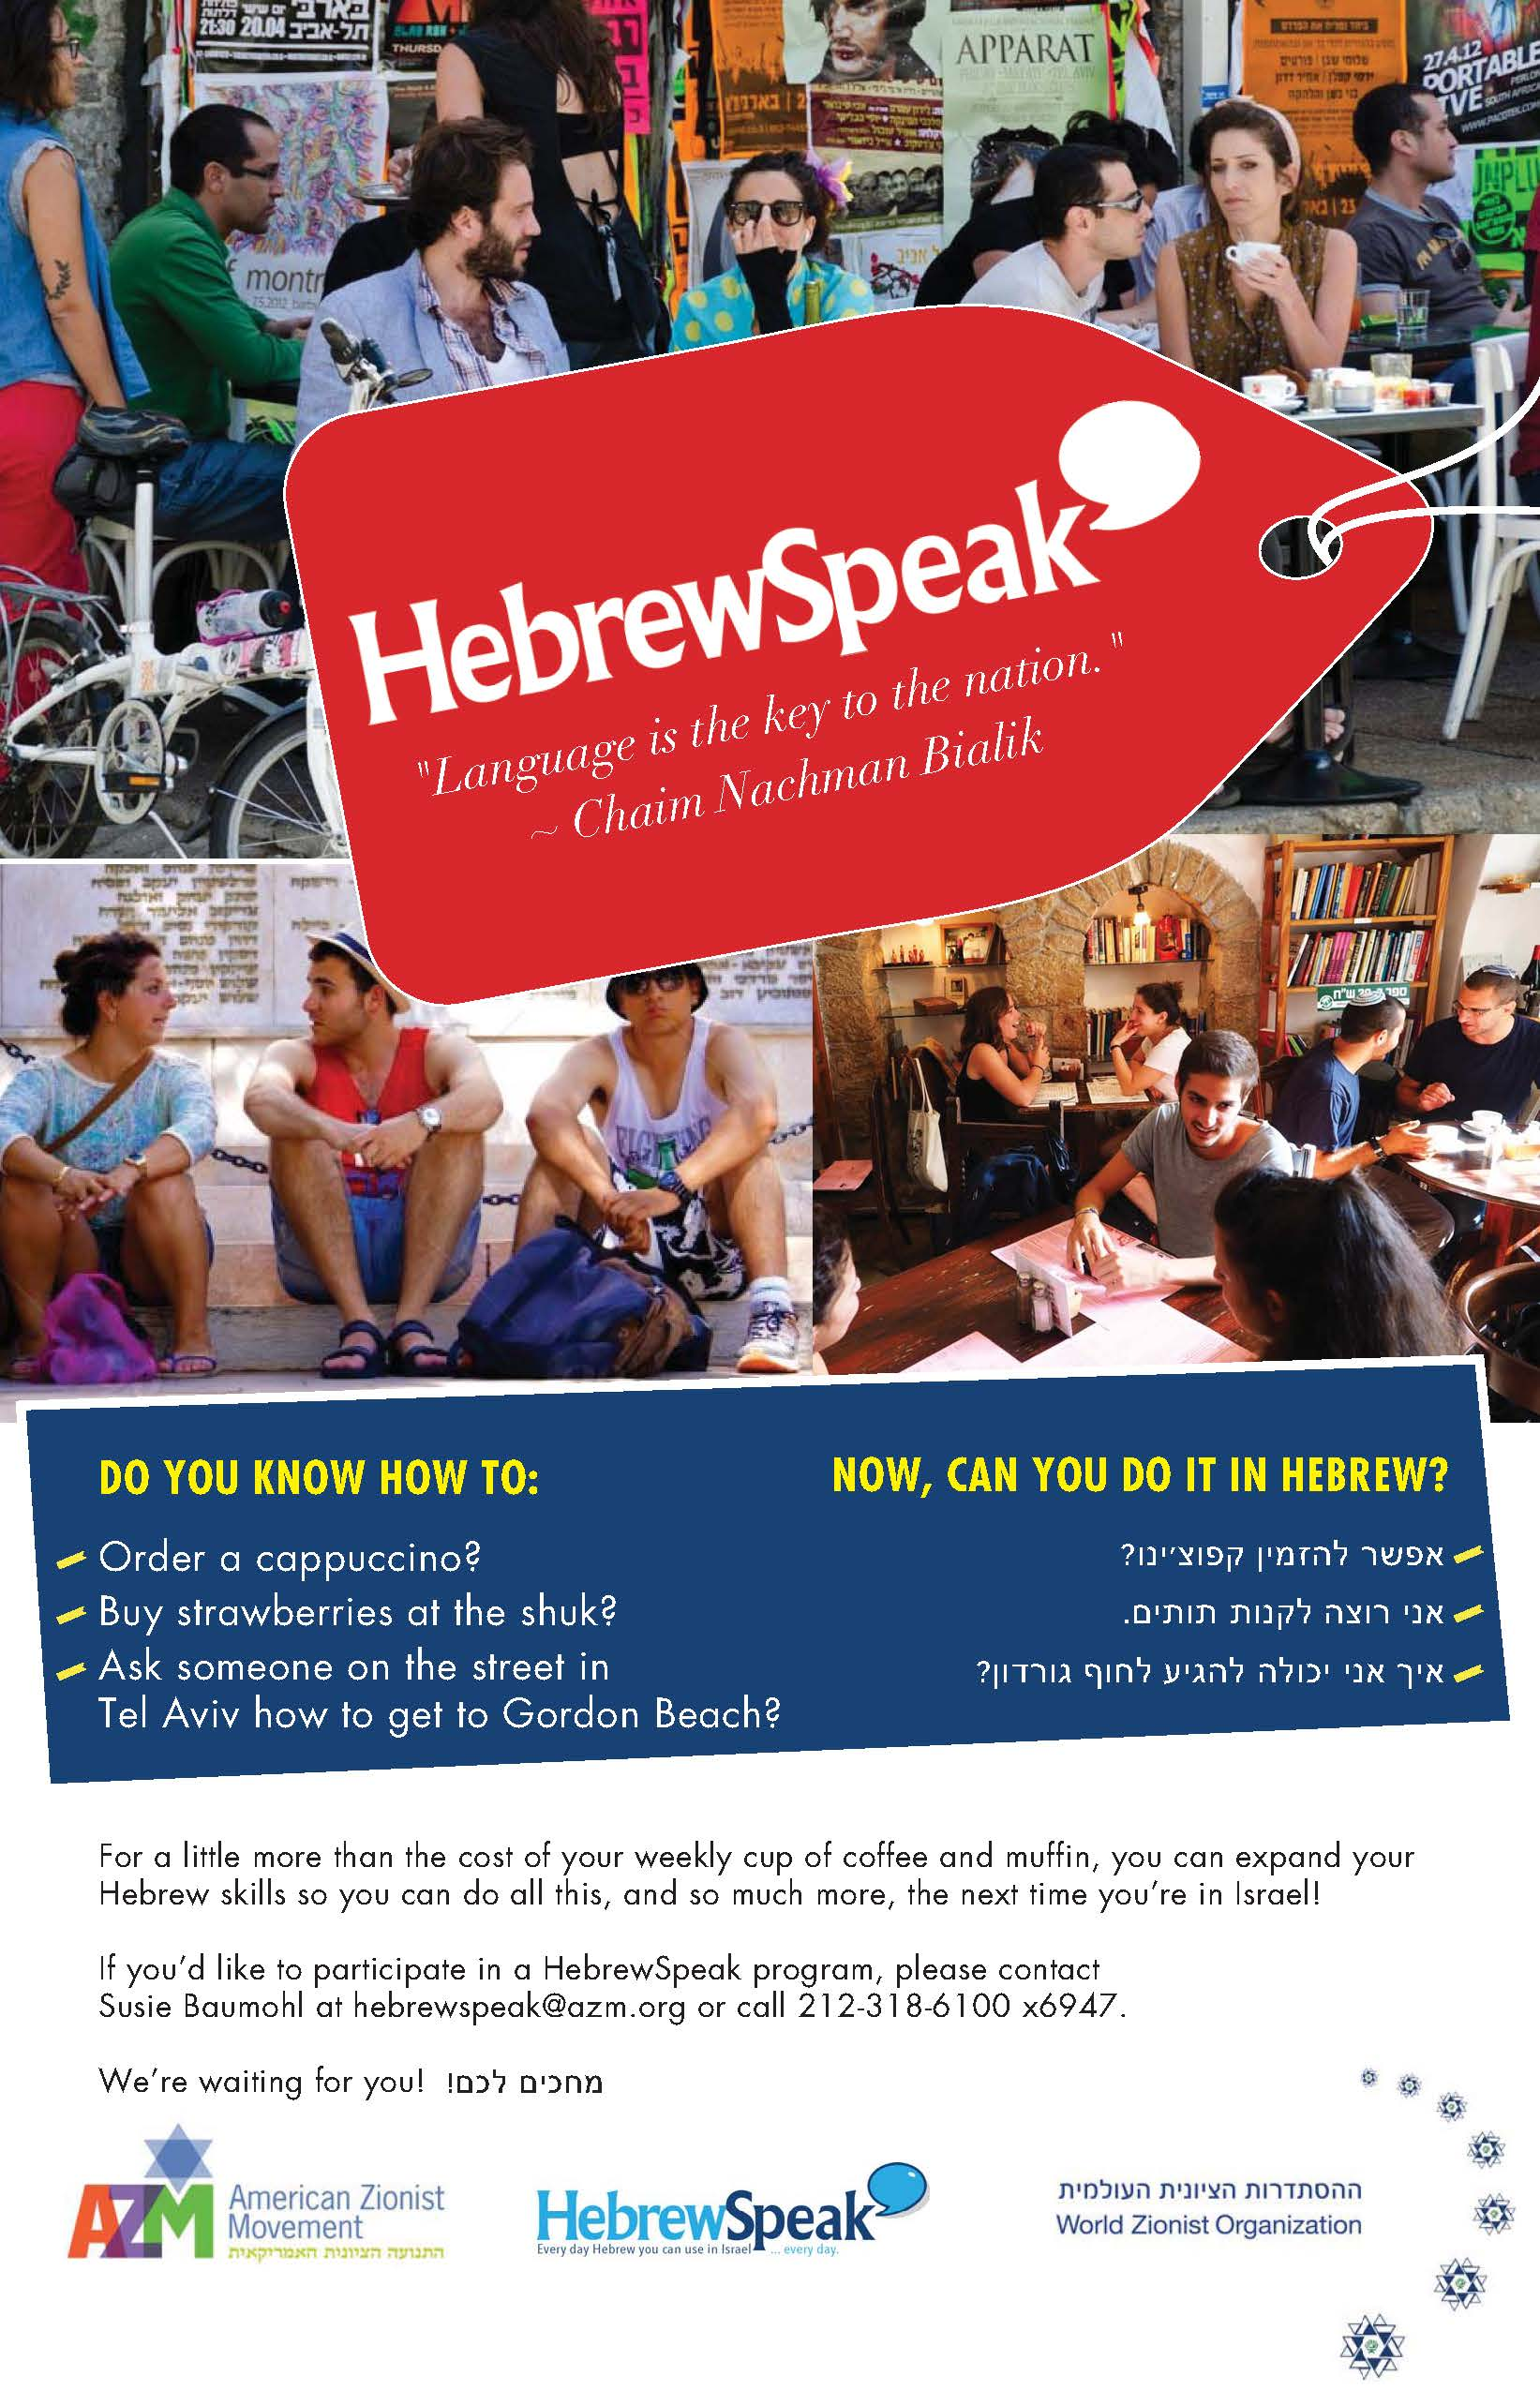 Join HebrewSpeak and learn how to speak Hebrew like an